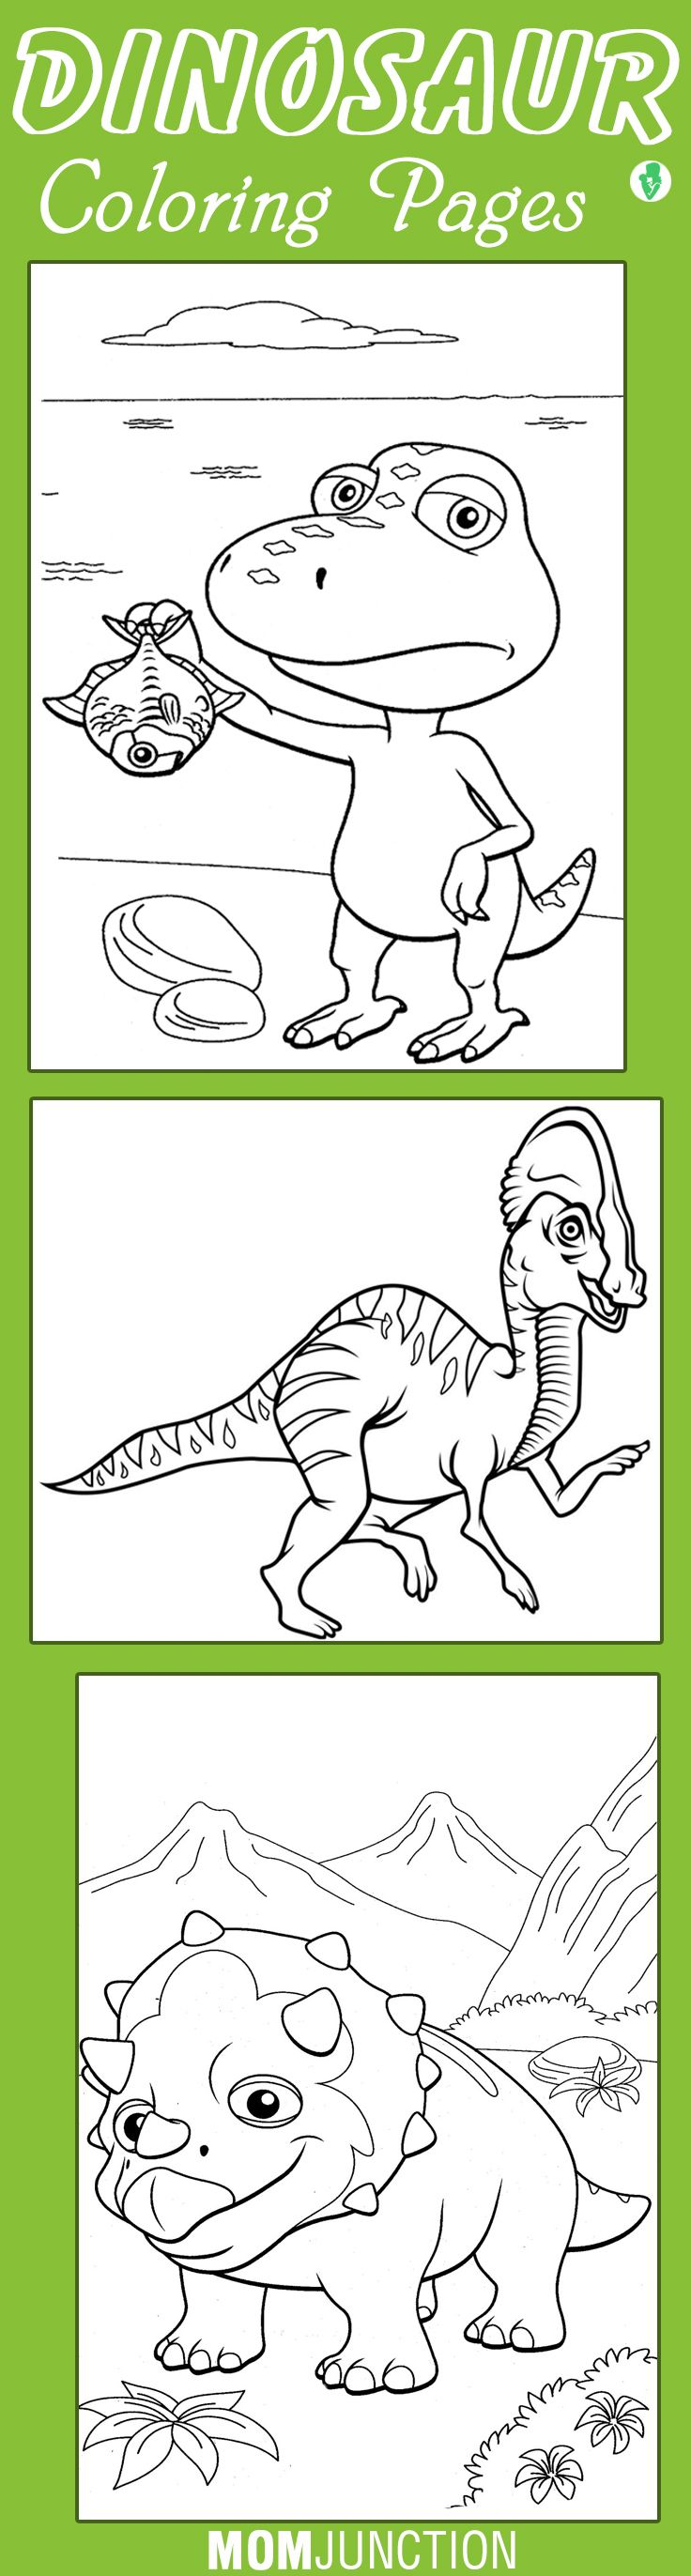 Printable coloring pages dinosaurs - Top 10 Free Printable Dinosaur Train Coloring Pages Online